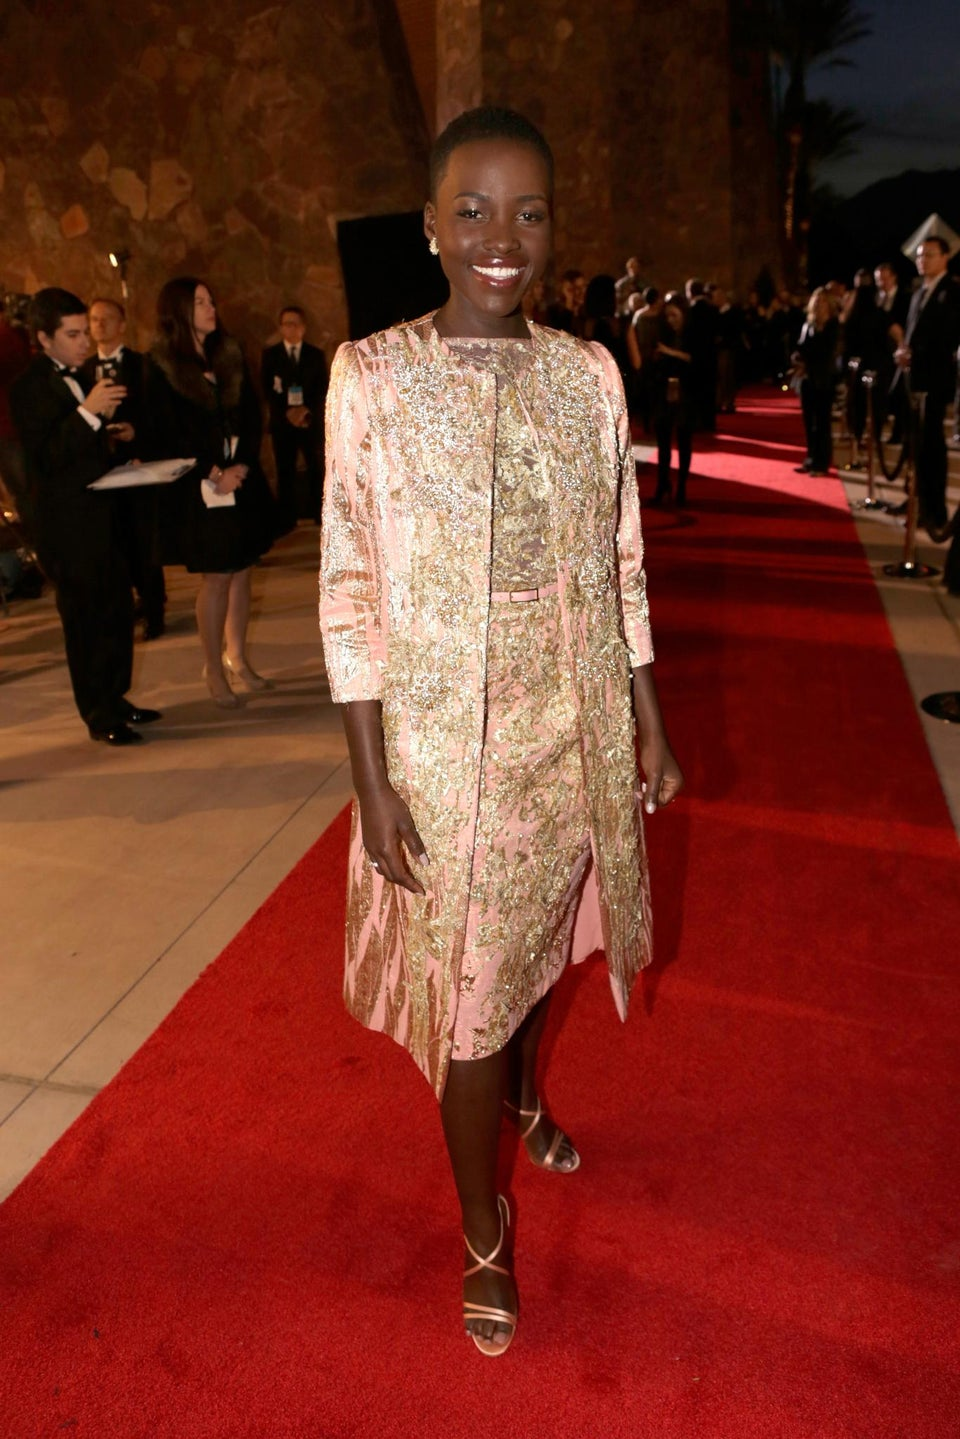 ESSENCE Black Women in Hollywood Event to Honor Lupita Nyong'o, Cheryl Boone Isaacs, Ava Duvernay